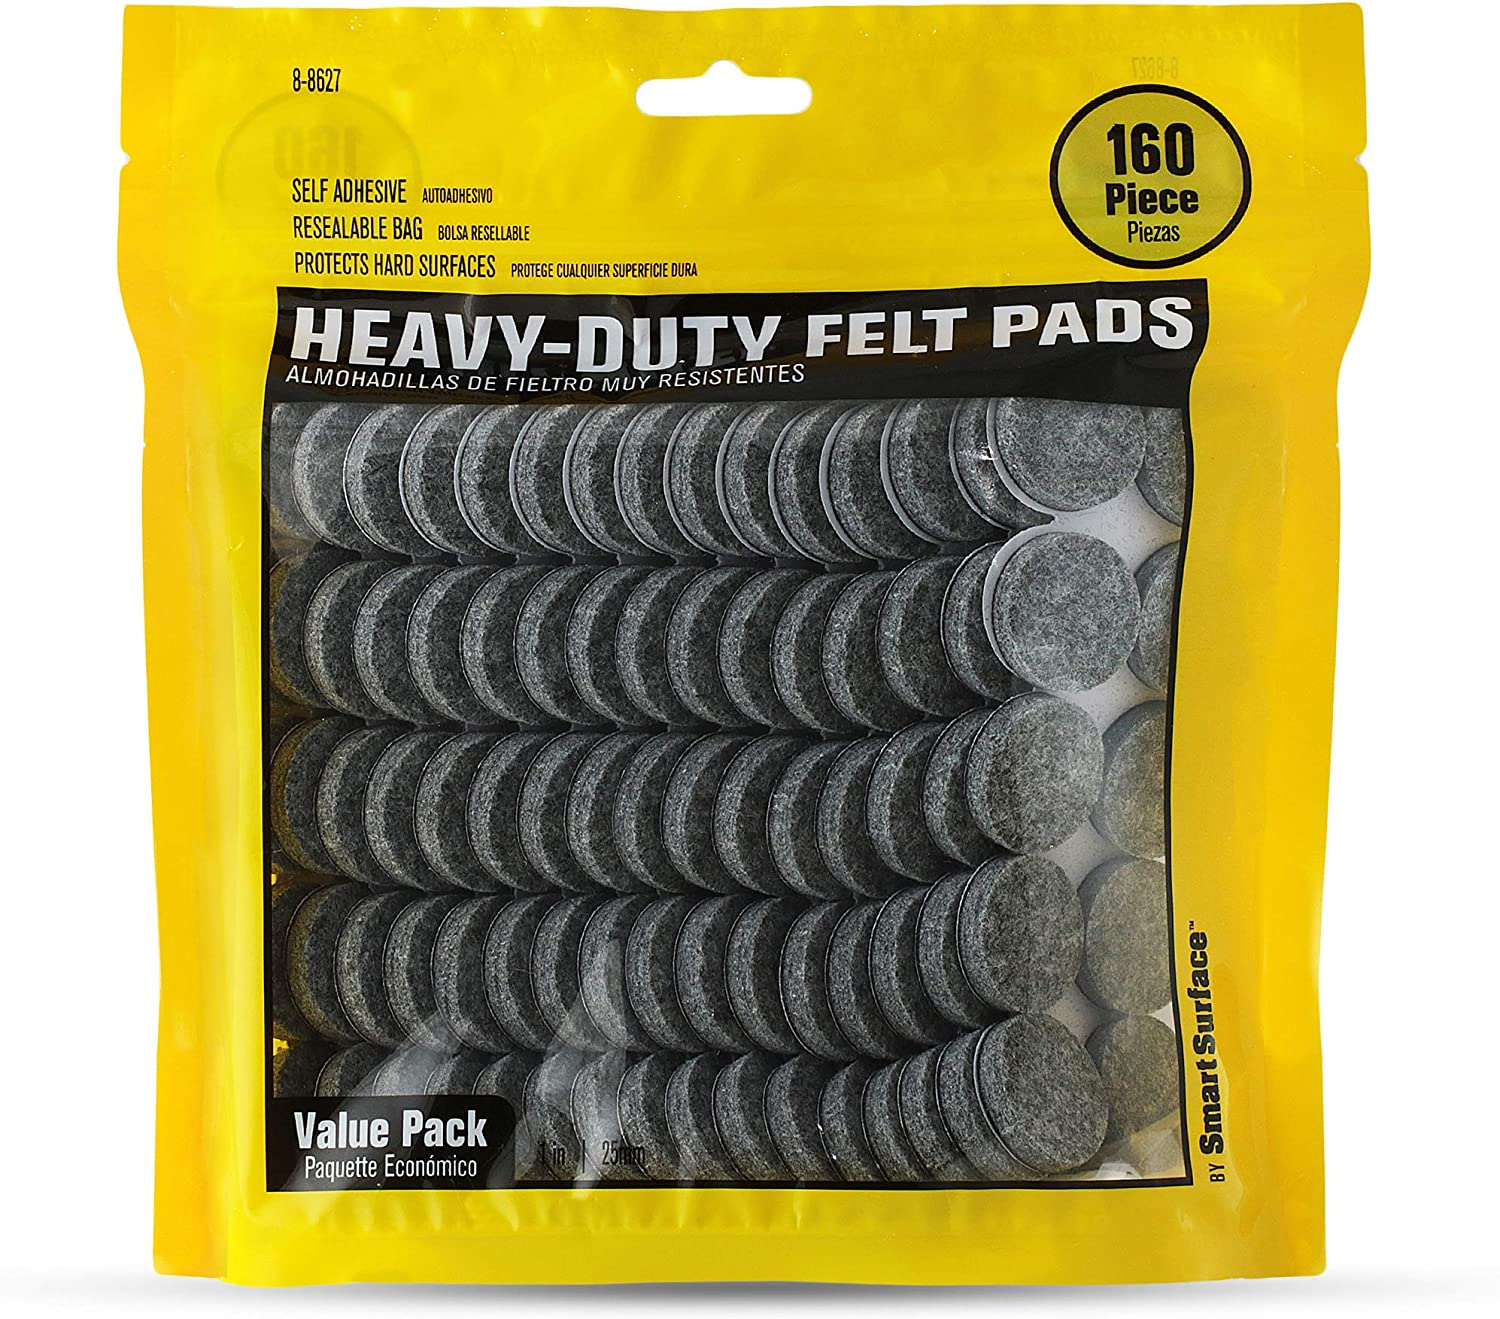 Smart Surface 8627 Heavy Duty Self Adhesive Furniture Felt Pads 1-Inch Round Gray 160-Piece Value Pack in Resealable Bag